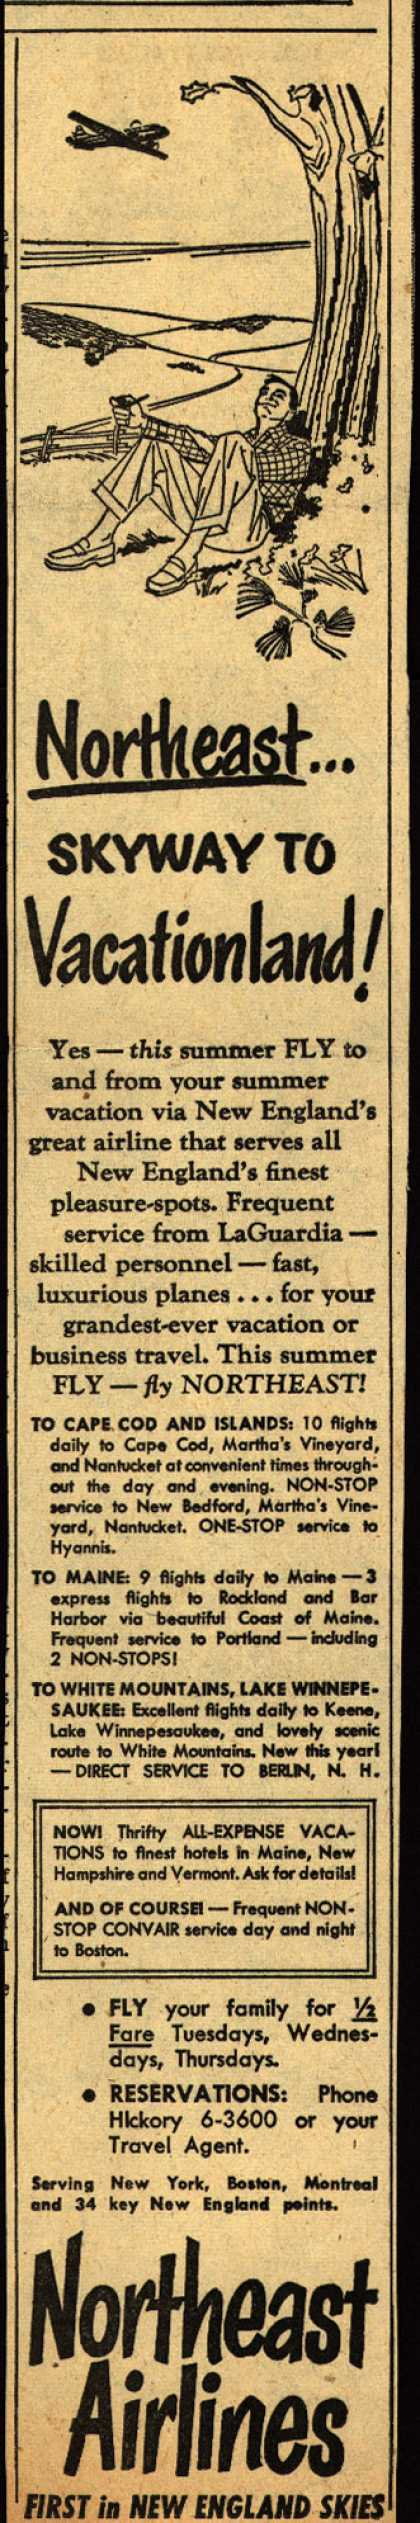 Northeast Airline's Vacation Travel – Northeast... Skyway to Vacationland (1951)